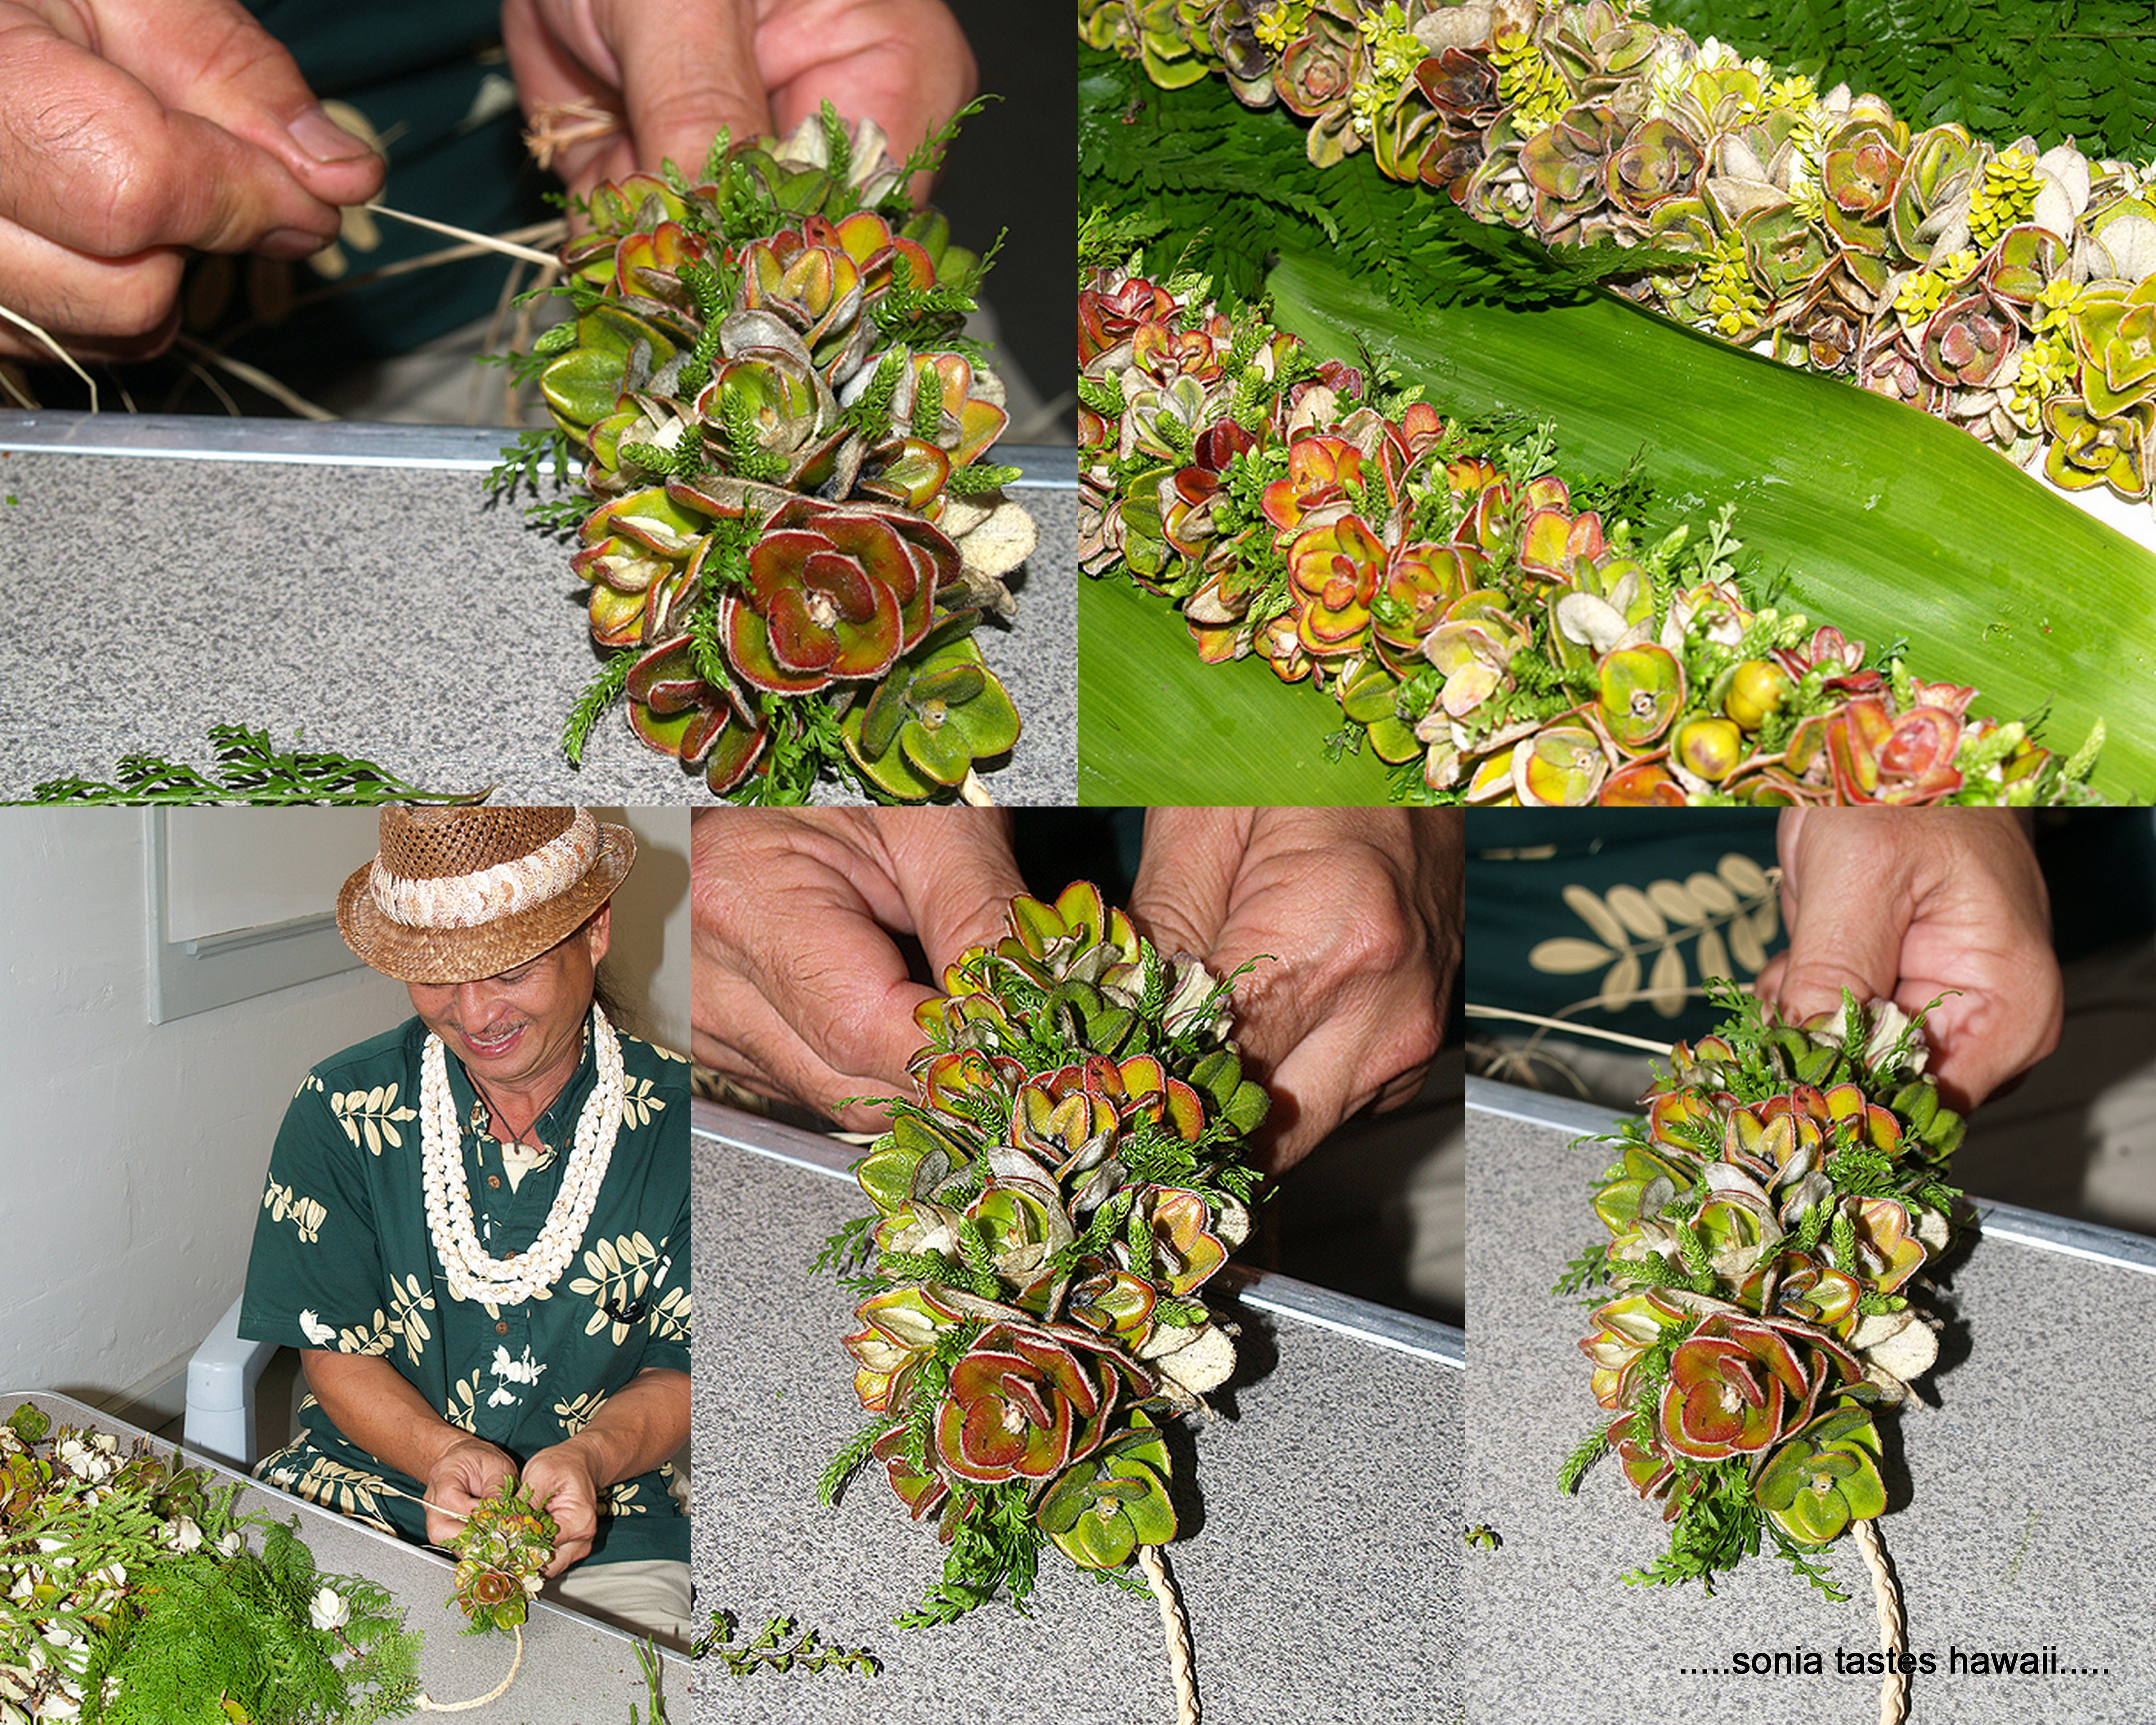 Sonia tastes hawaii may day is lei day in hawaii randy lee demonstrated throughout the day how to weave different style lei lei can be made of almost any material of course flowers greenery seeds izmirmasajfo